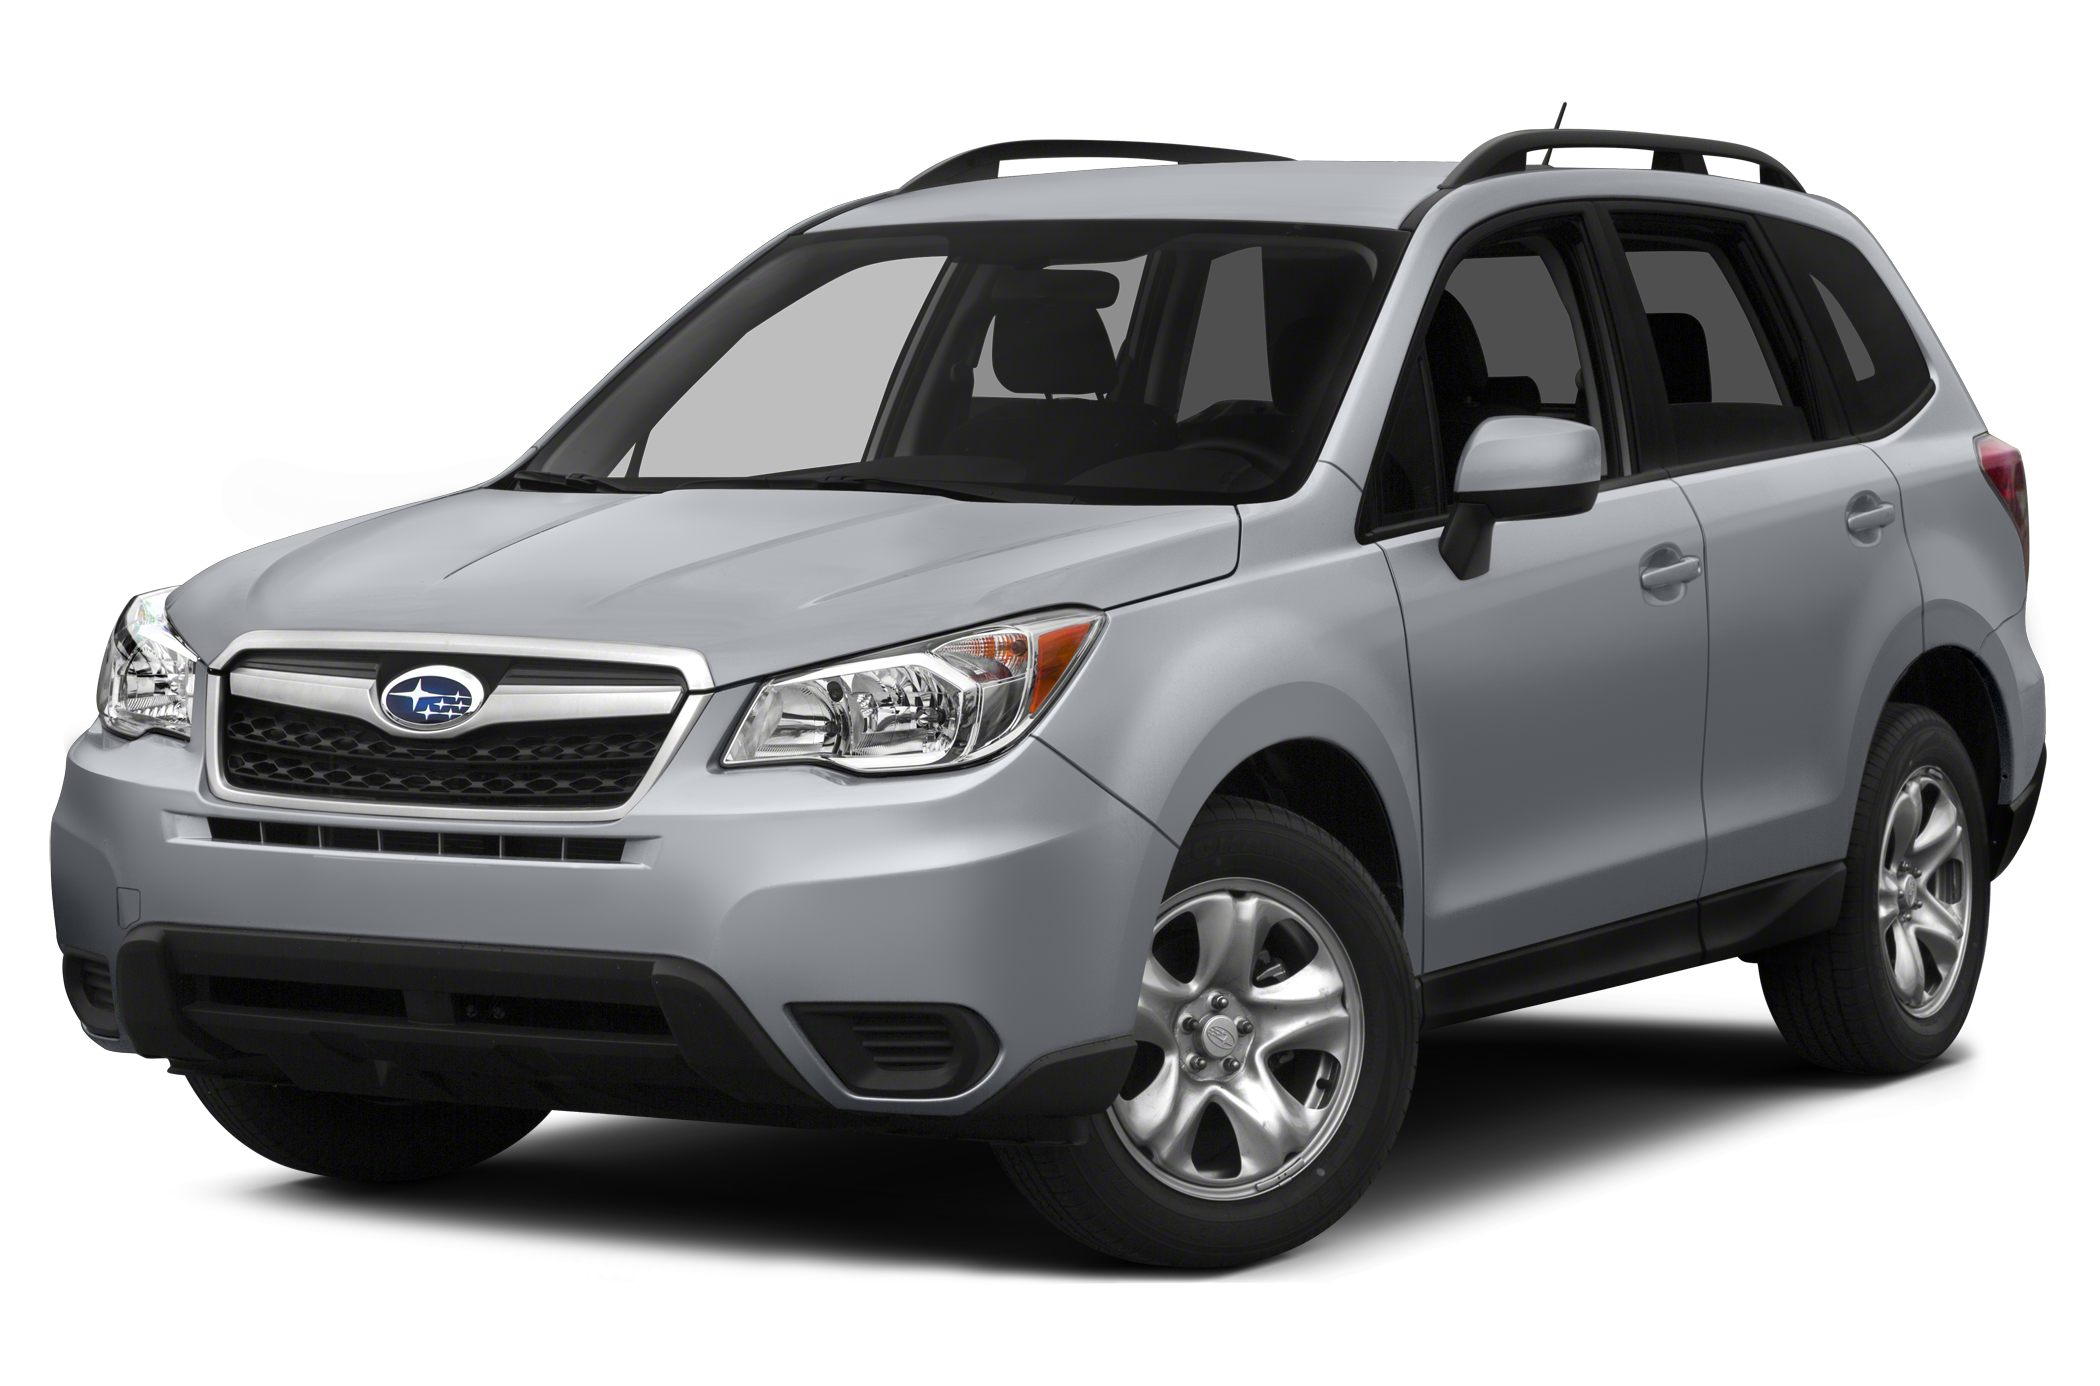 2015 Subaru Forester 2.5i SUV for sale in Claremont for $23,995 with 1,644 miles